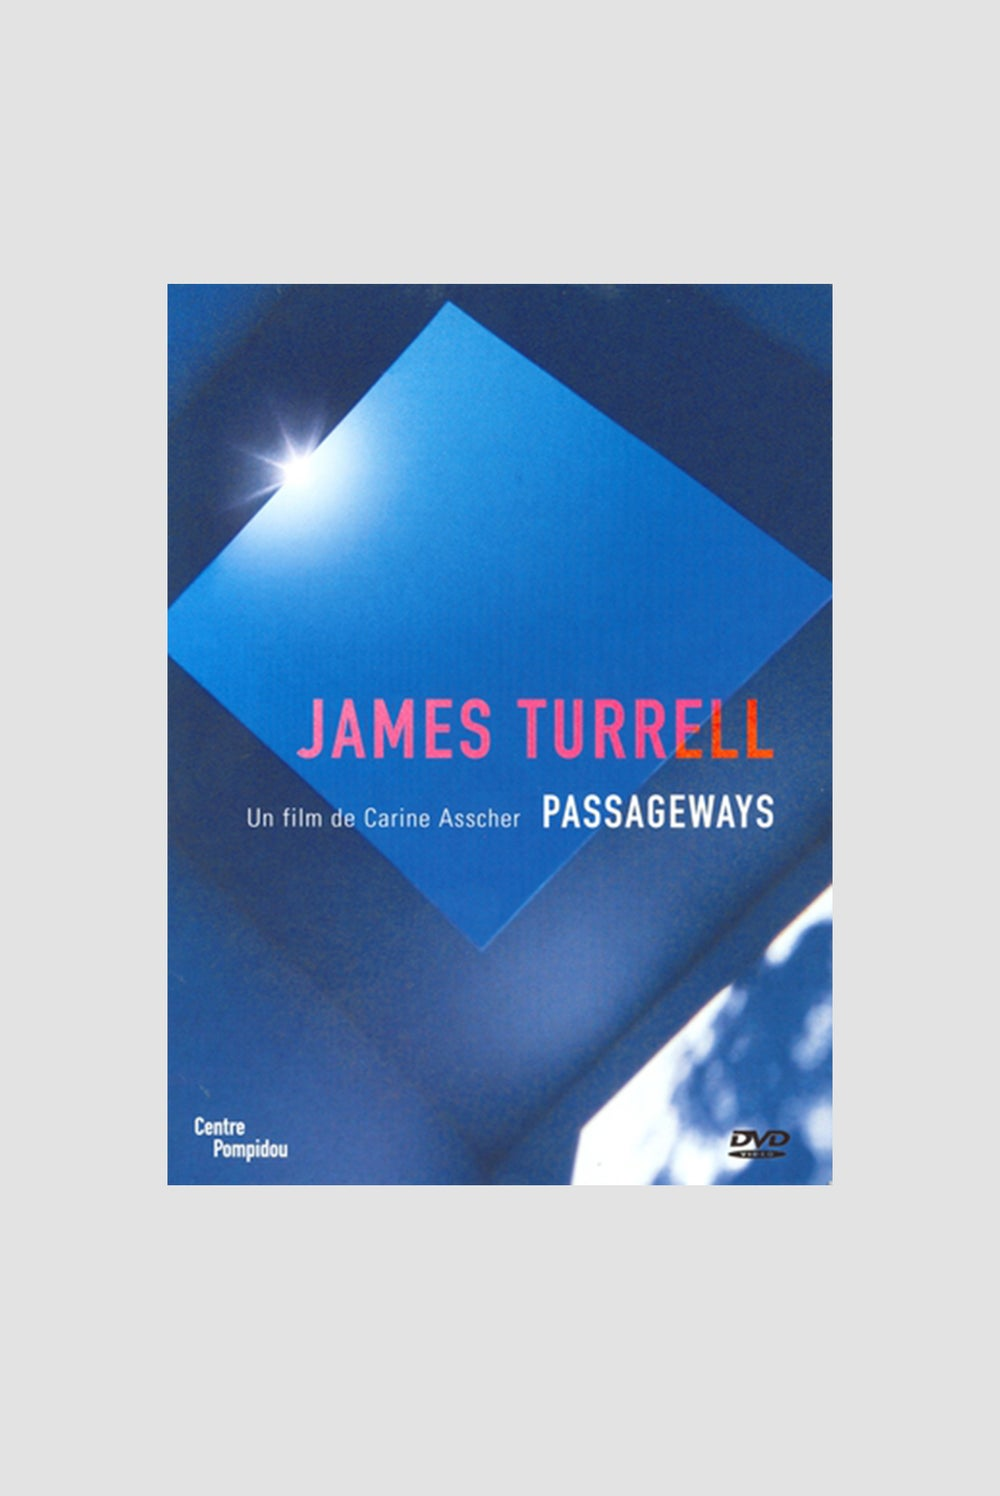 Image of James Turrell - Passageways